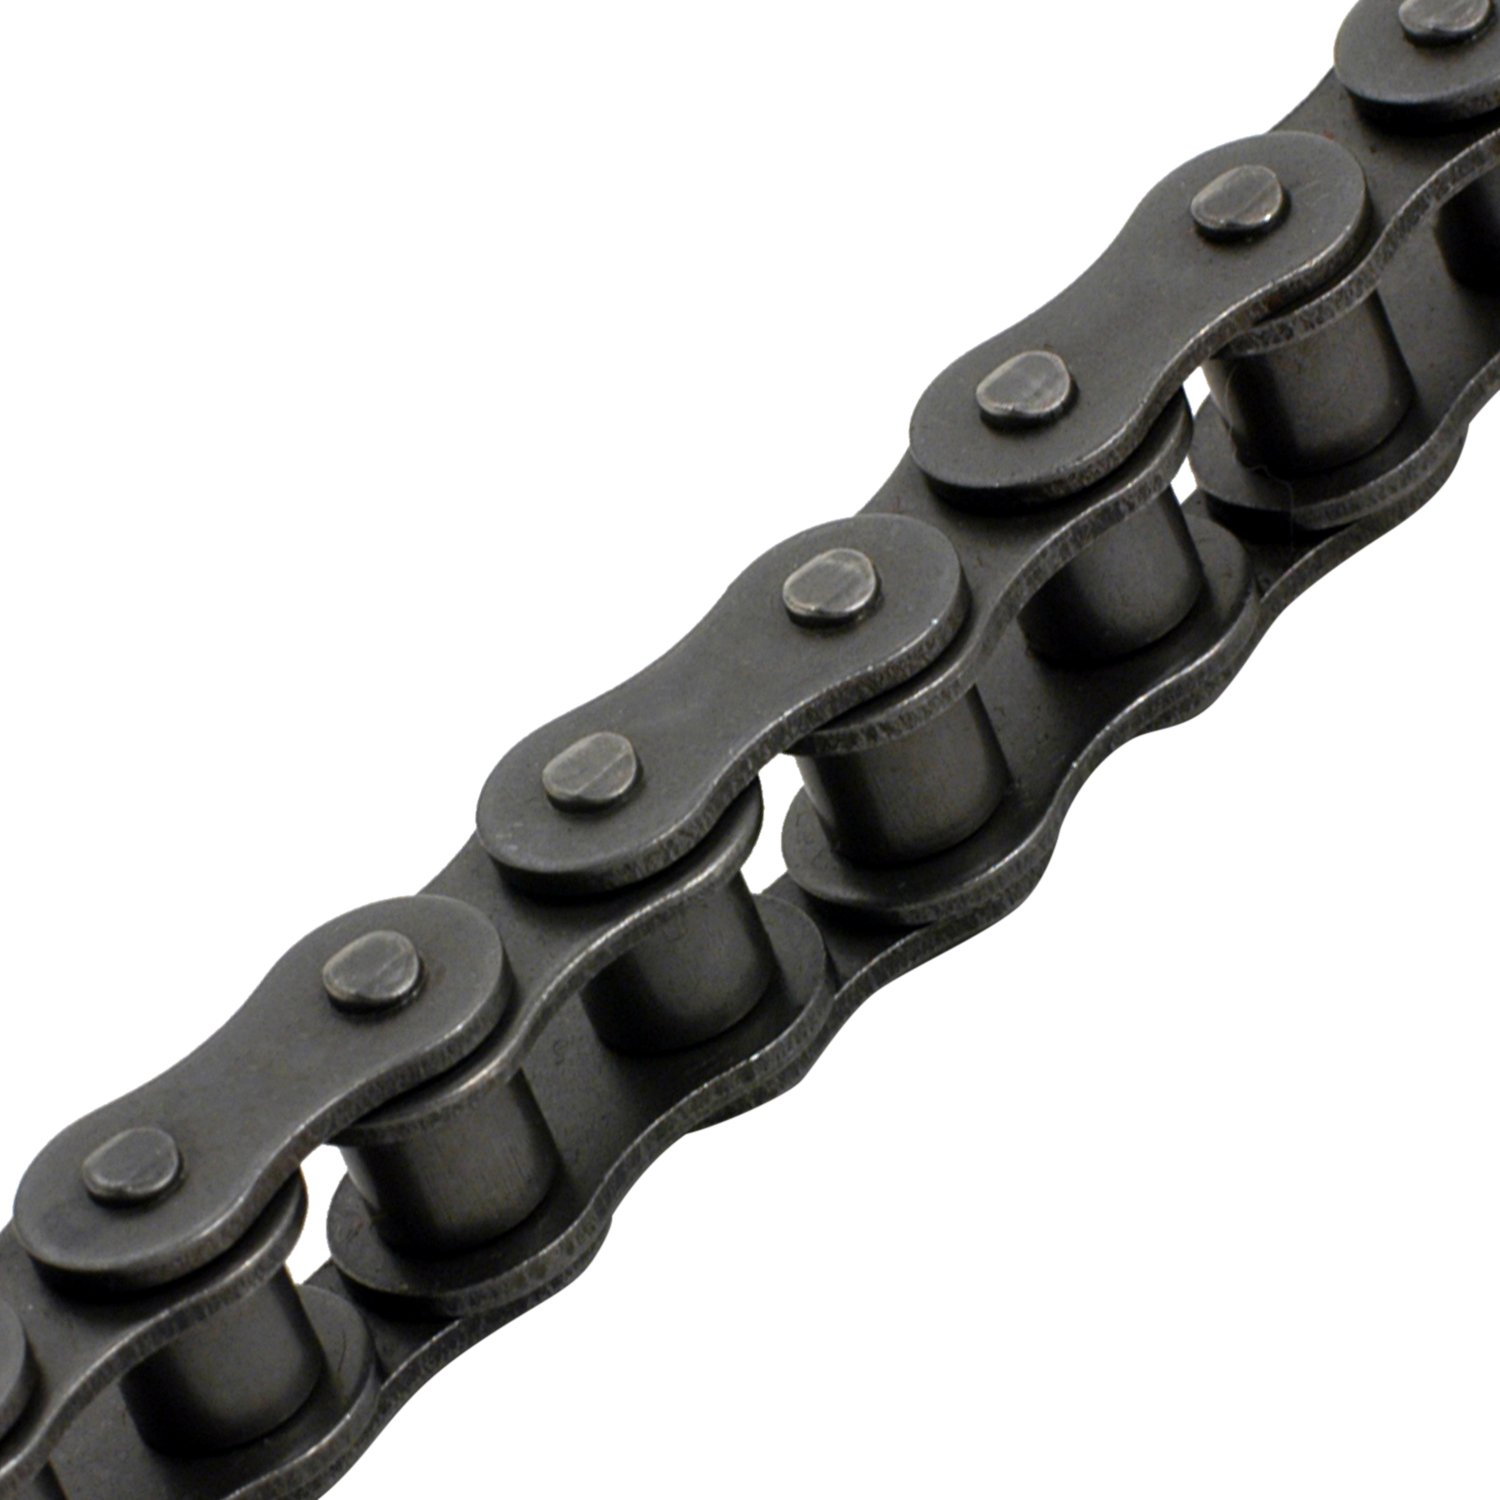 TRITAN 16B-1 10FT Precision ISO Metric 3.05 Meter Box Bearings Limited 25.4 mm Pitch Roller Chain